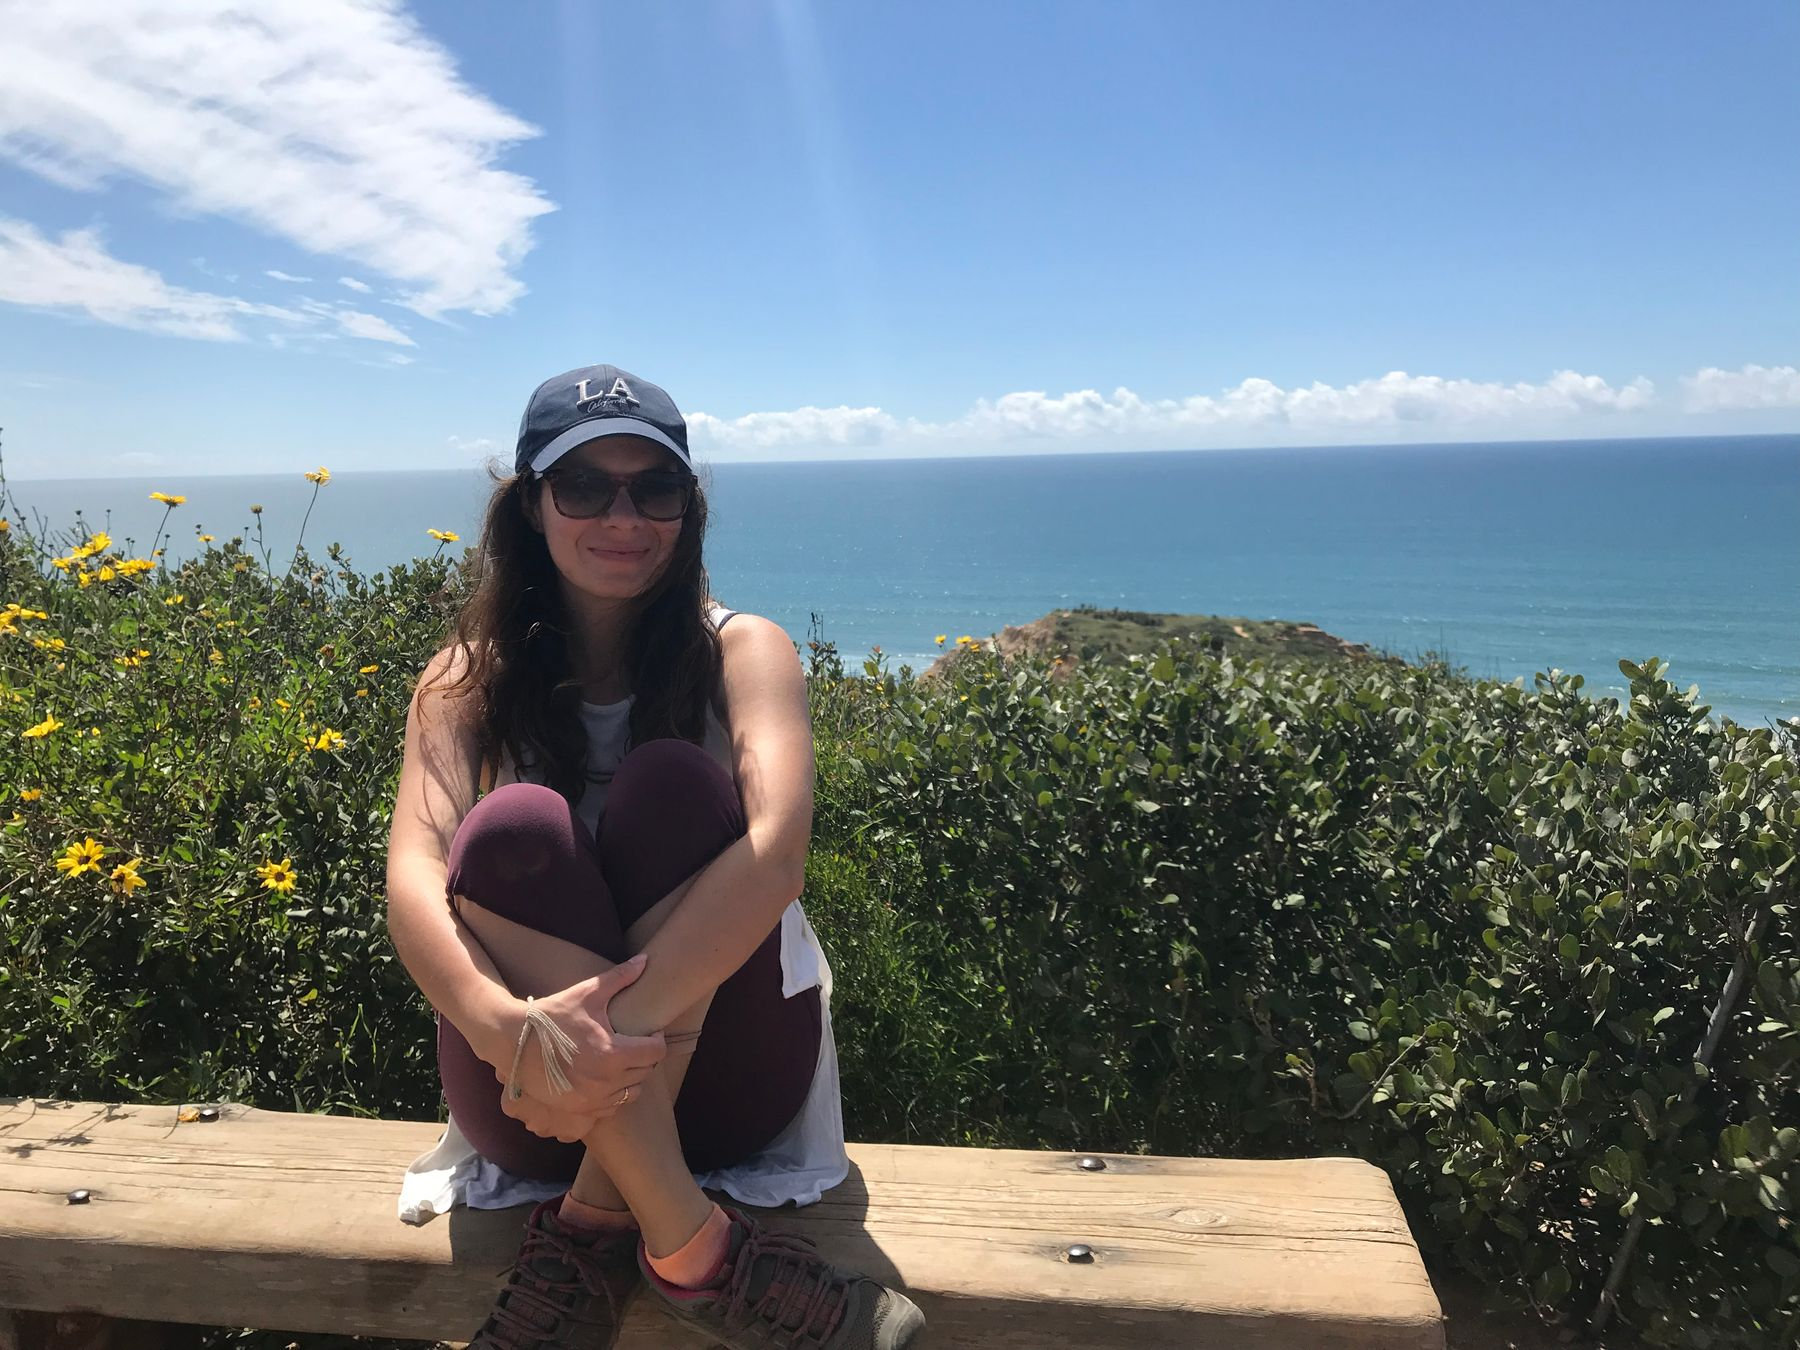 solo traveller wearing a hat and sunglasses sitting on a bench at Torrey Pines National Park in San Diego, California